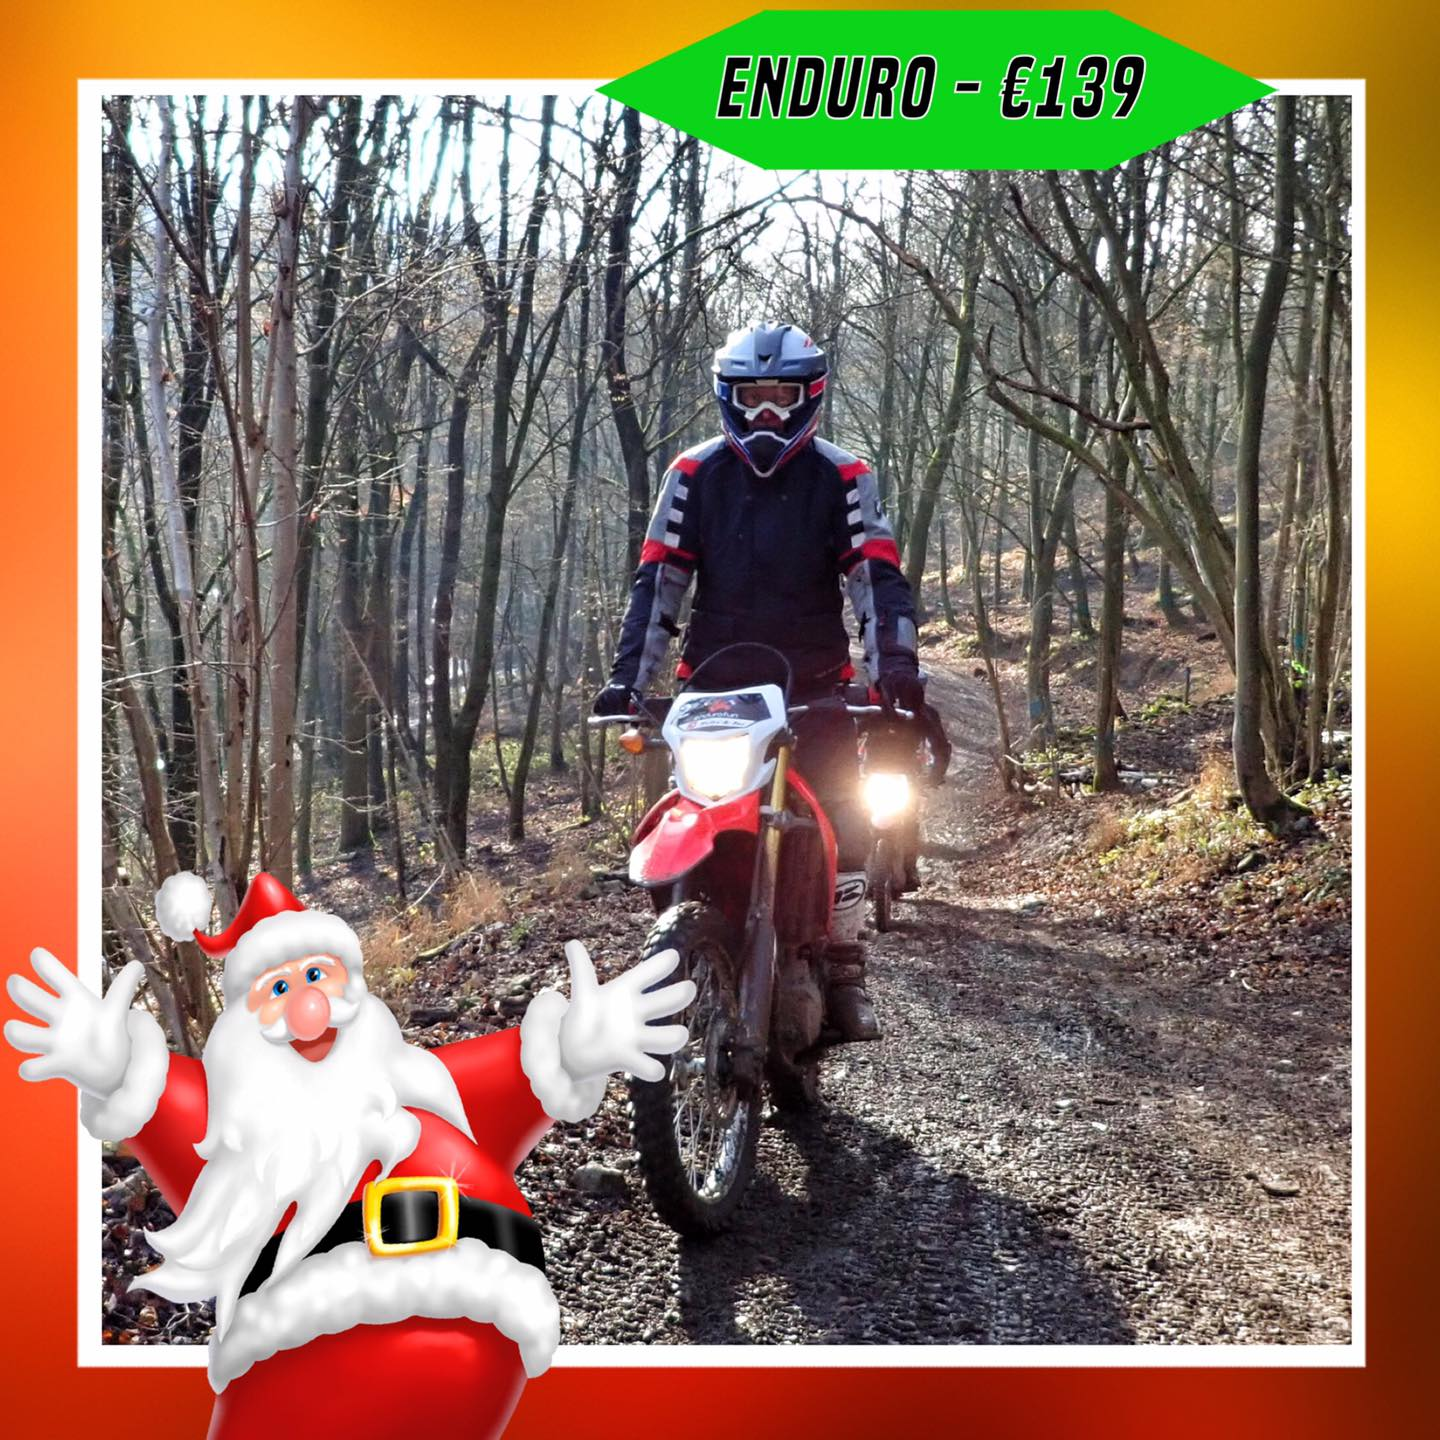 Kerst-initiaties Bilstain Endurofun 14